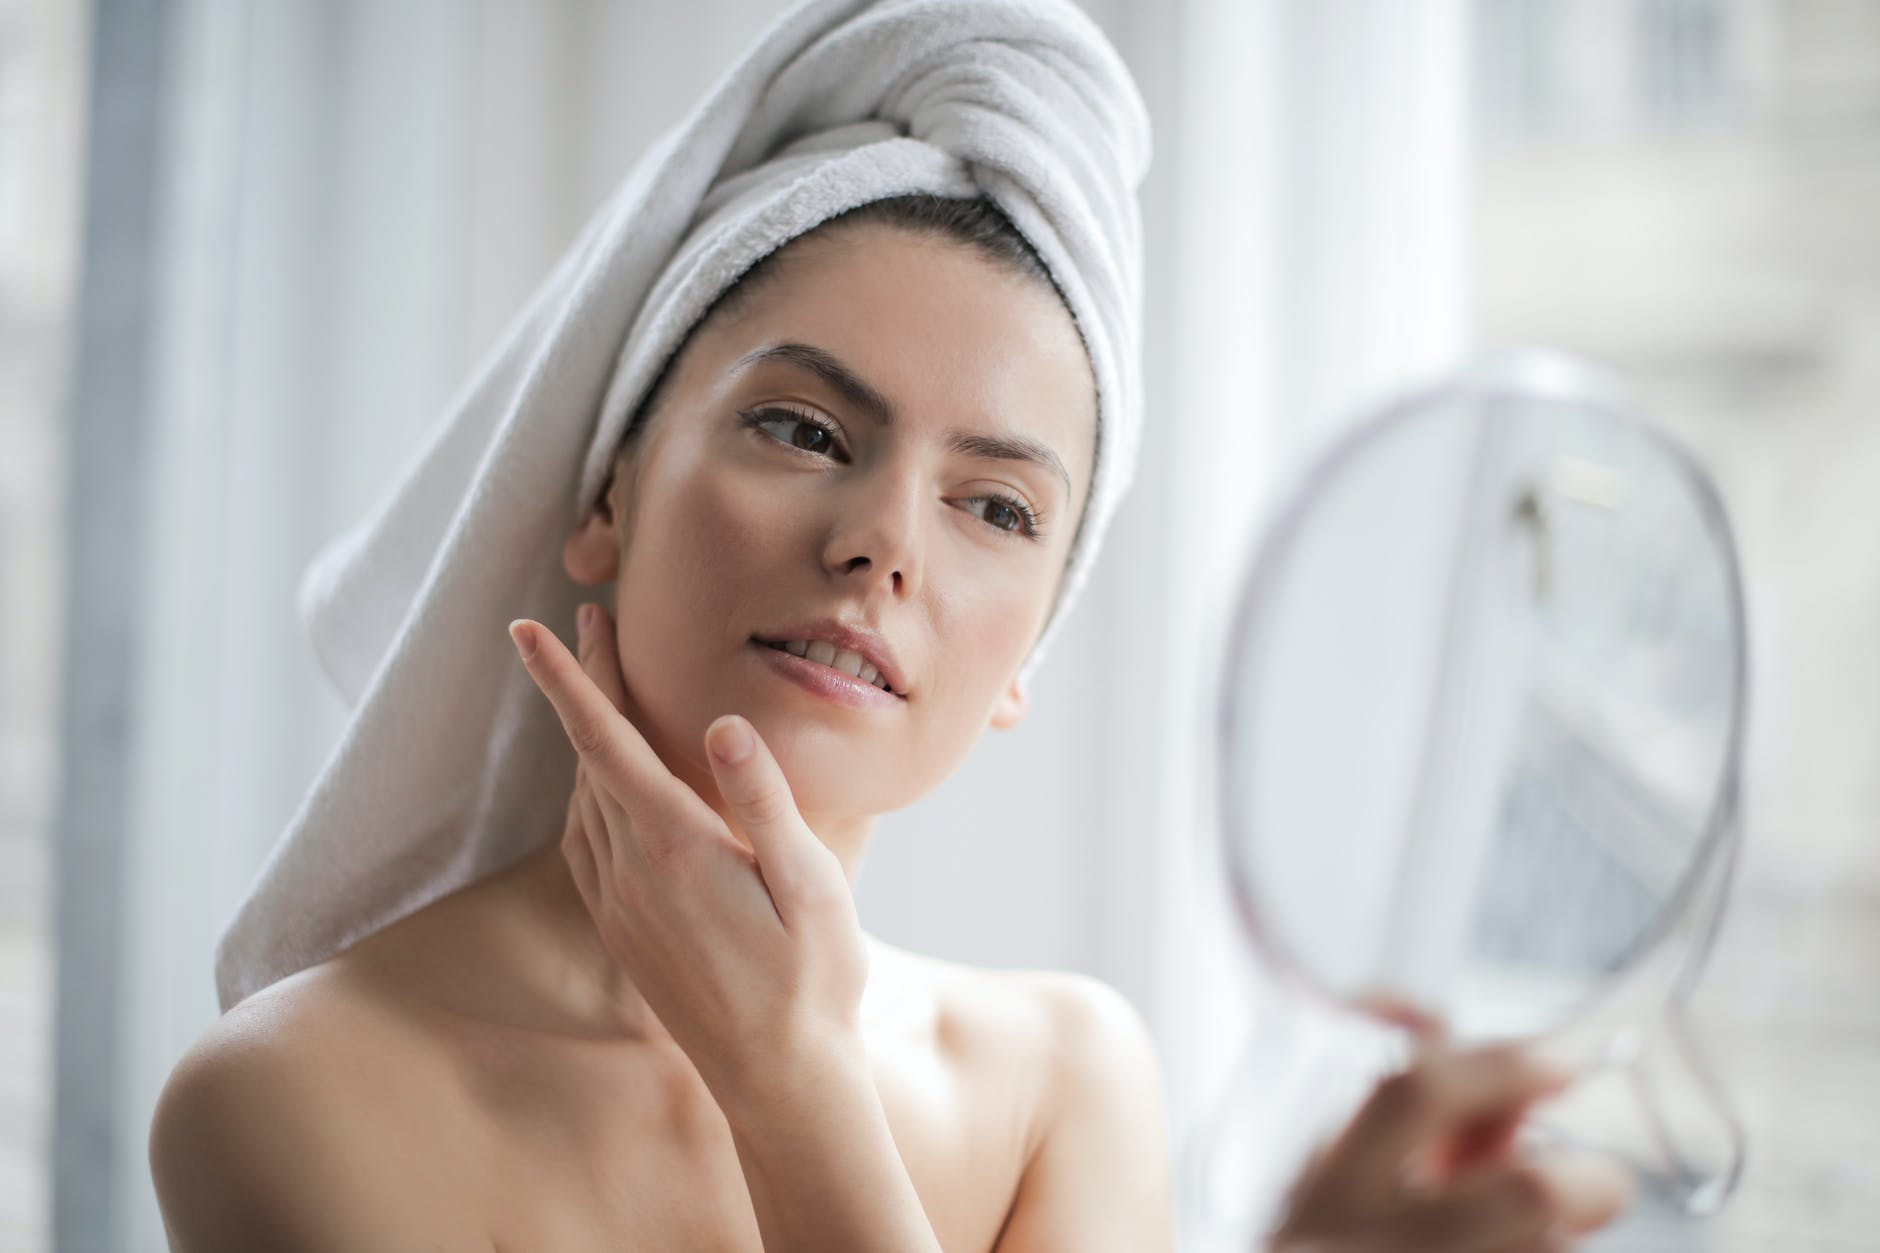 10 Commandments for Using Biologi Skincare Products